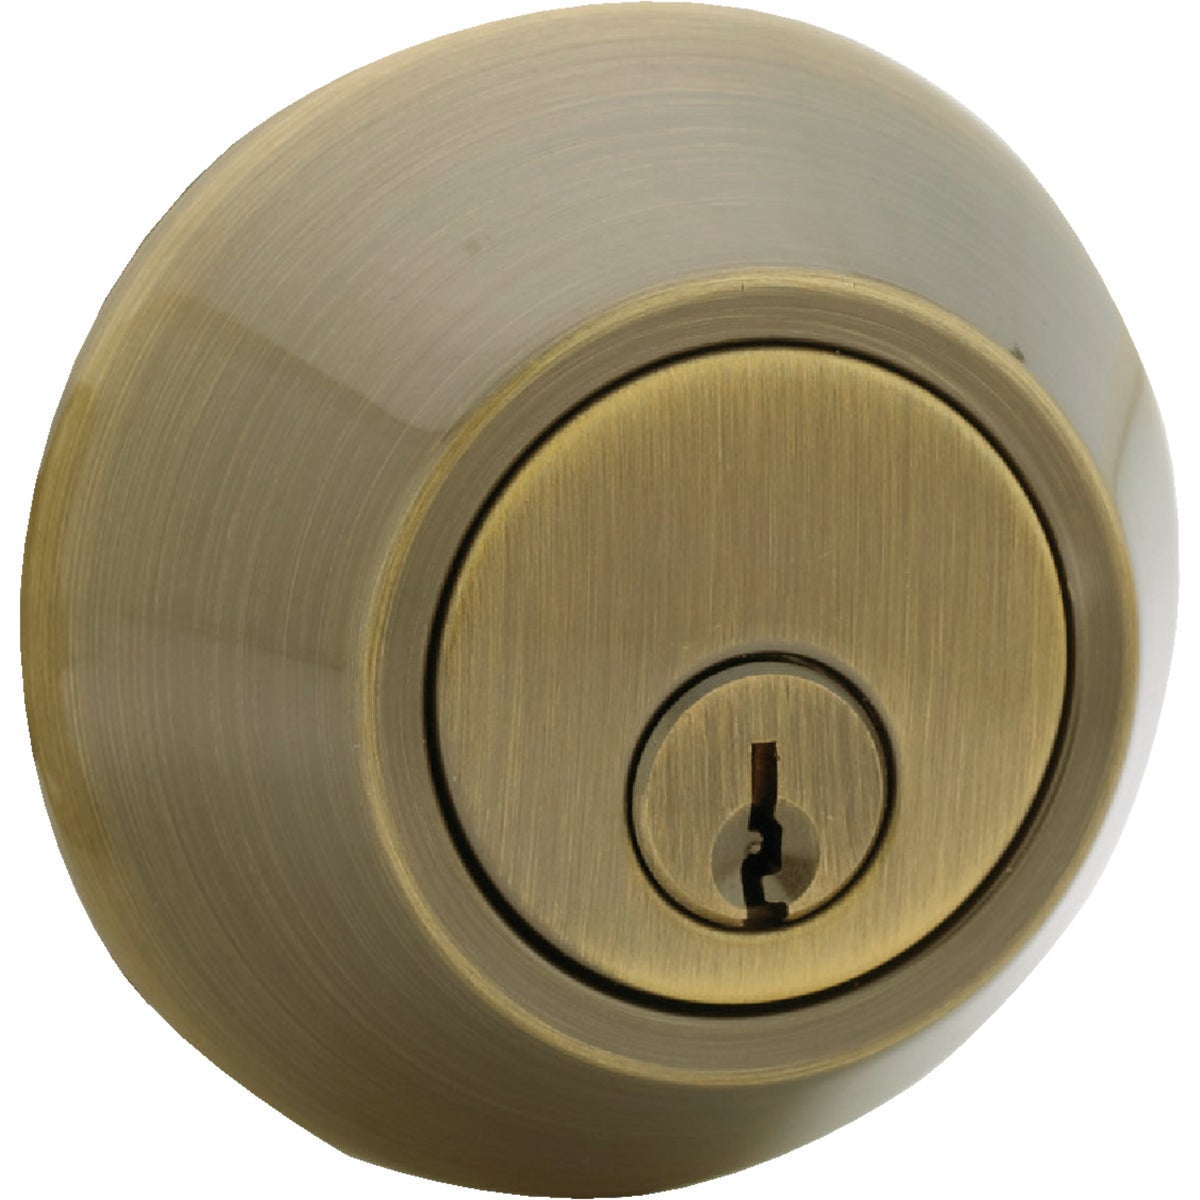 AB CP 1CYL DEADBOLT - D101AB CP by Do it Best